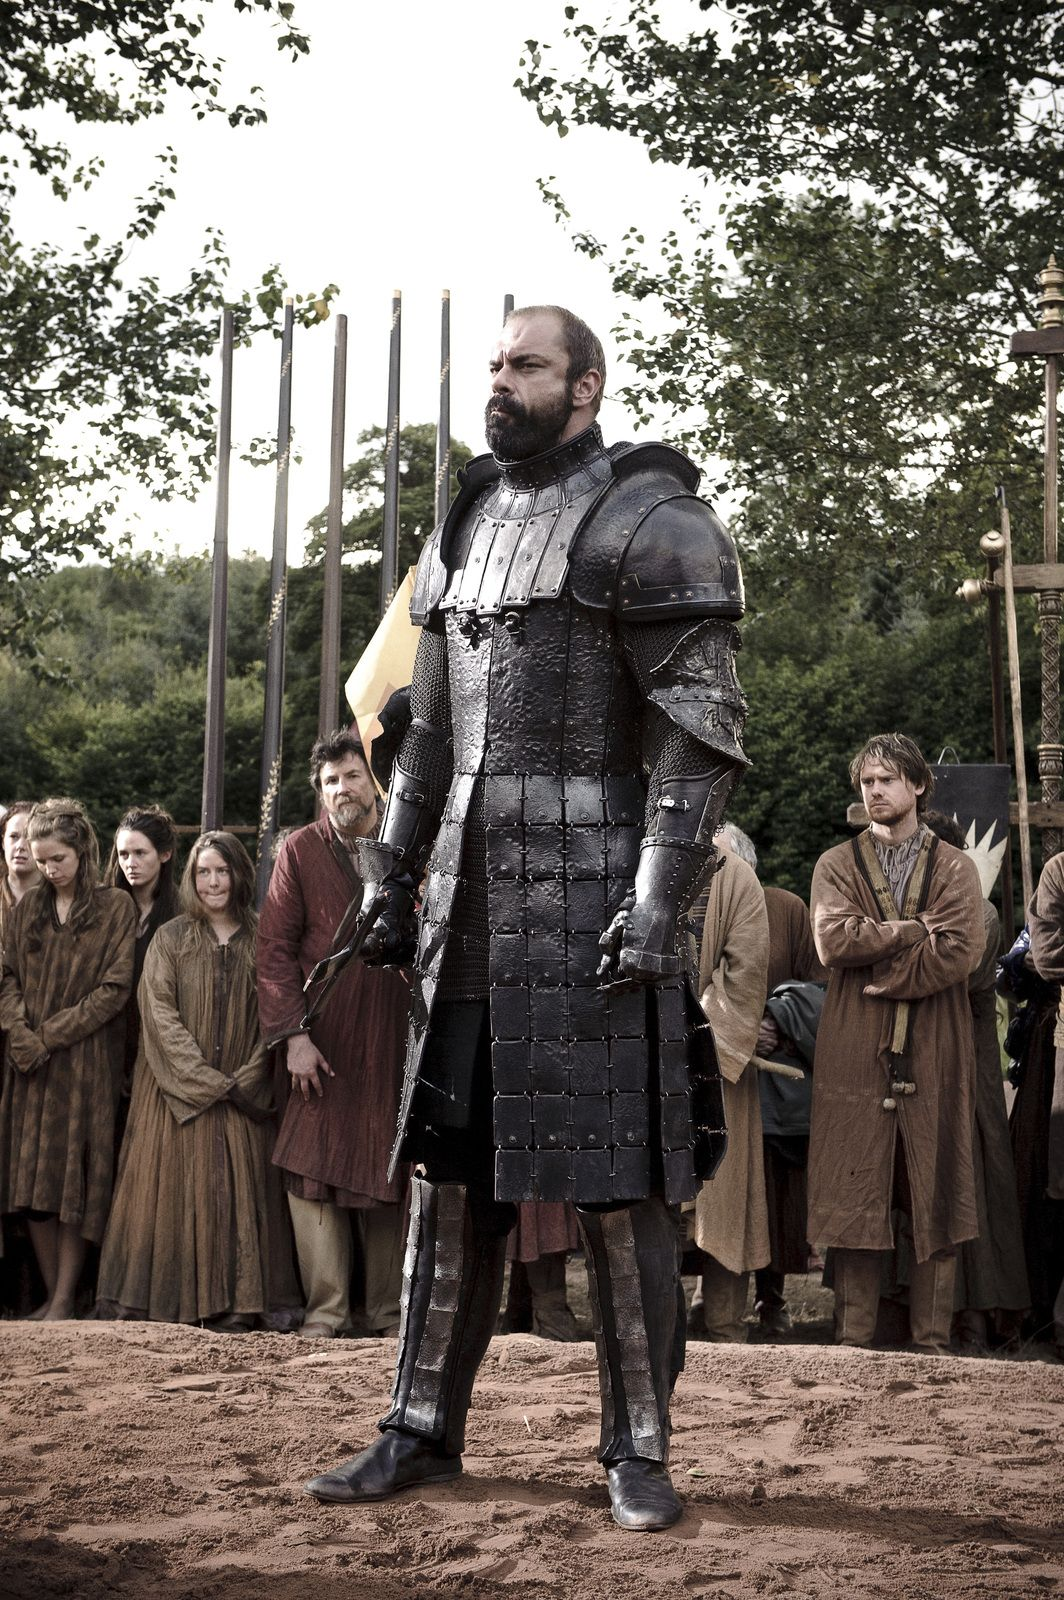 Ser Gregor Clegane,Sandor's elder brother